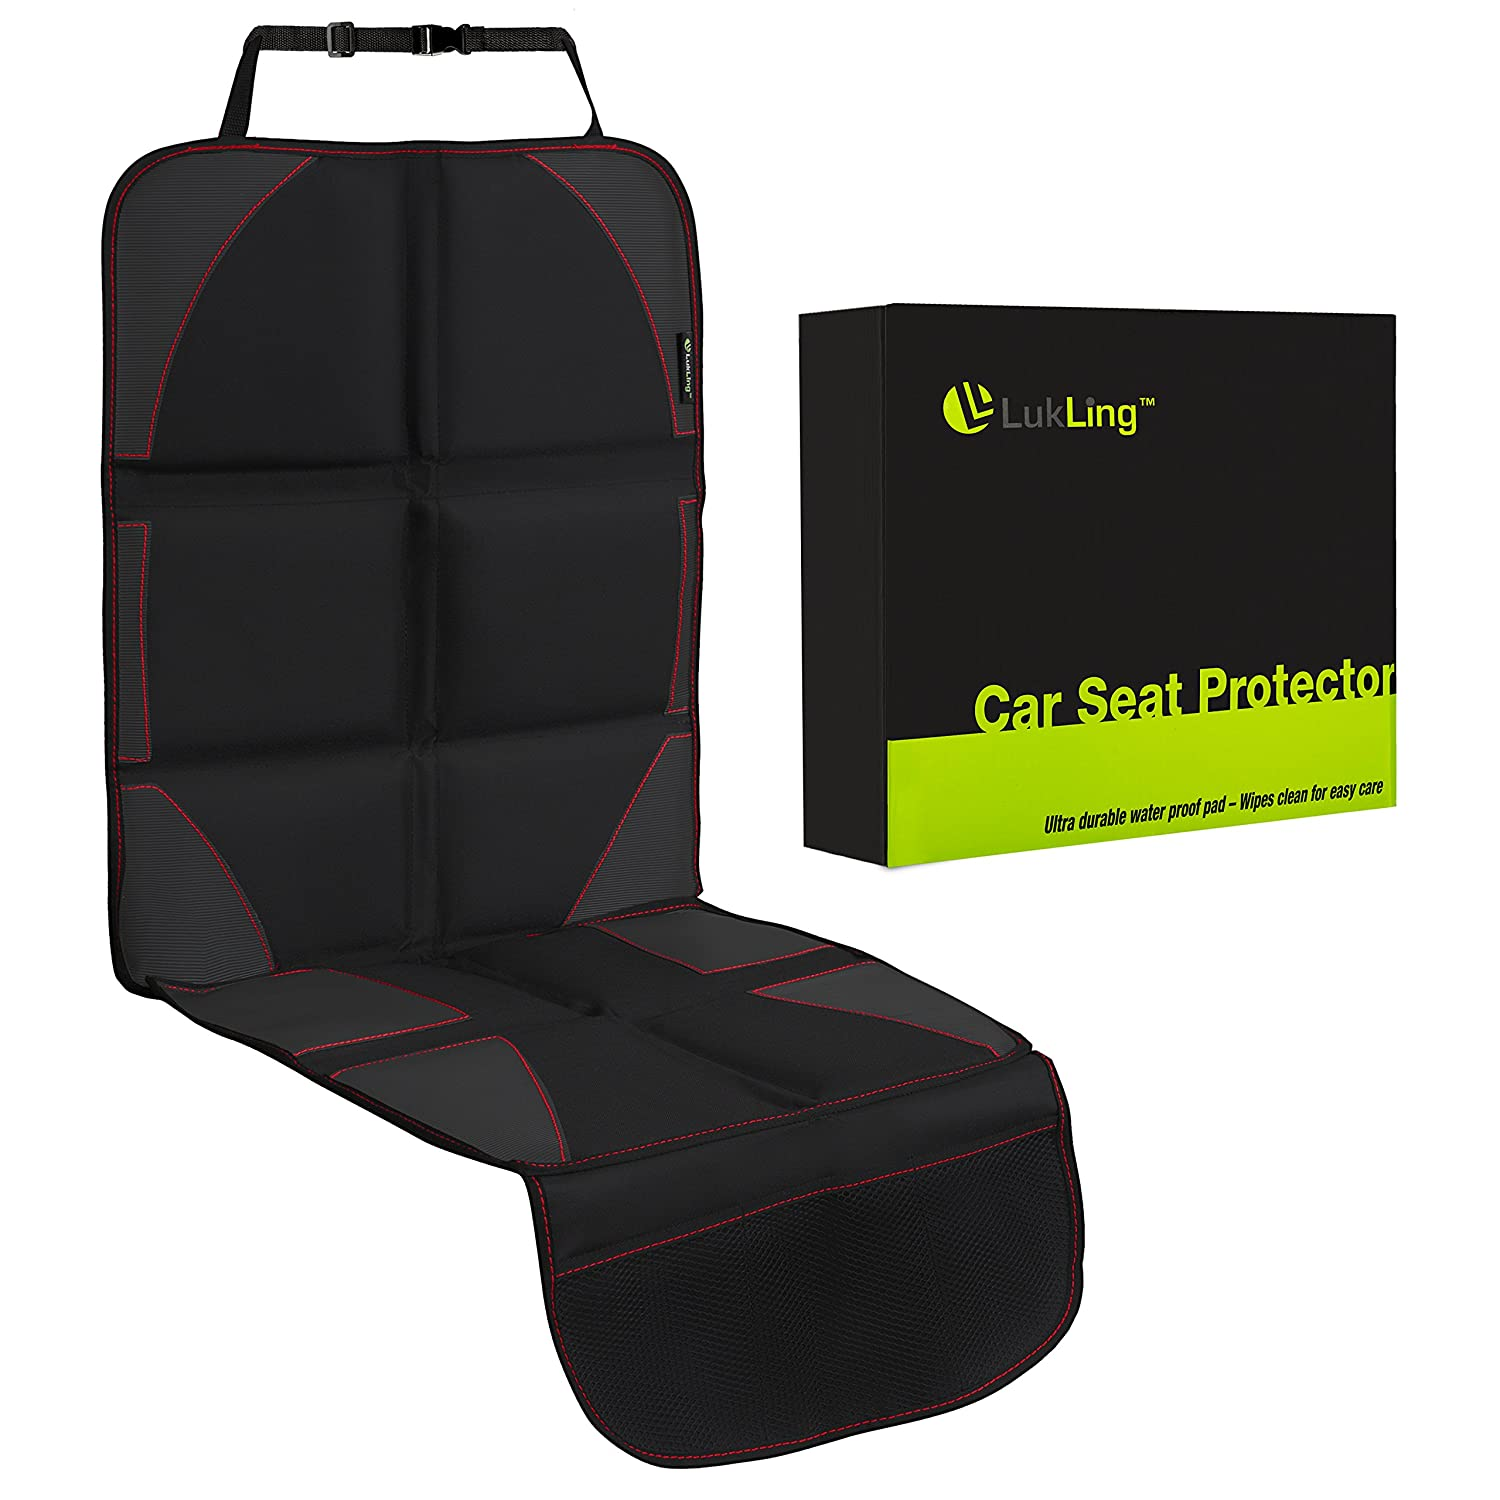 Car Seat Protector with Thickest Padding, Largest Pad for Leather Seats in Luxury Cars - 2 Mesh Organizer Pockets - Works Great with Children and Pets, Waterproof (Black with Red Stitching) Lukling